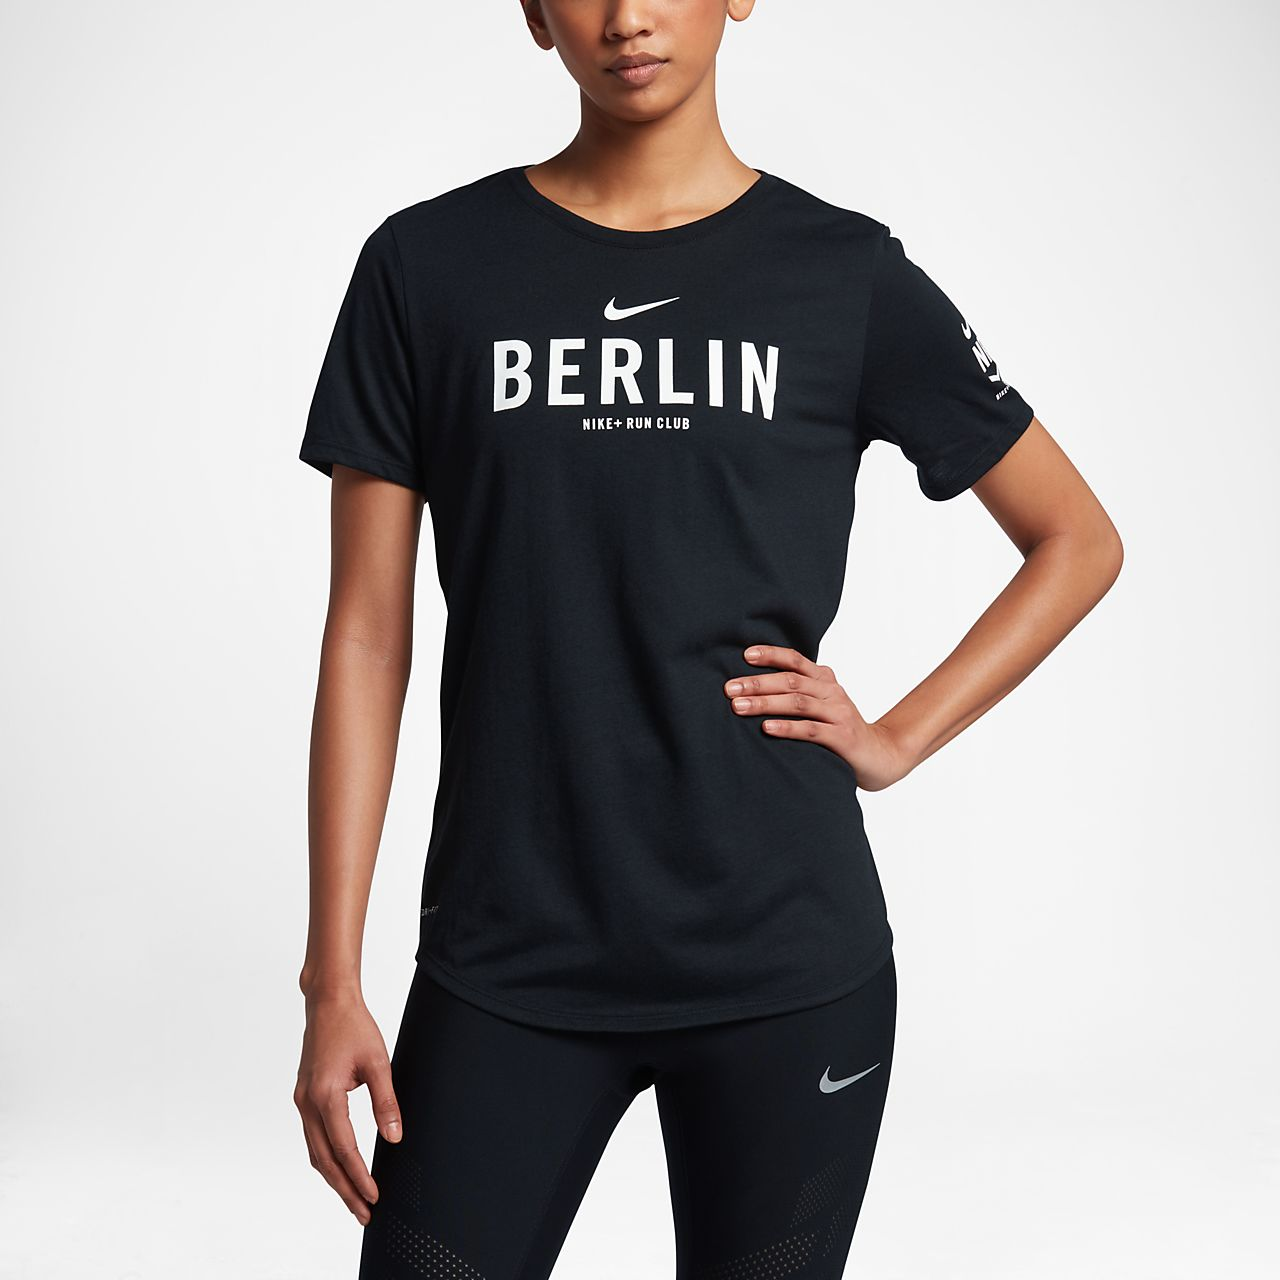 nike dri fit run club berlin women 39 s t shirt ro. Black Bedroom Furniture Sets. Home Design Ideas